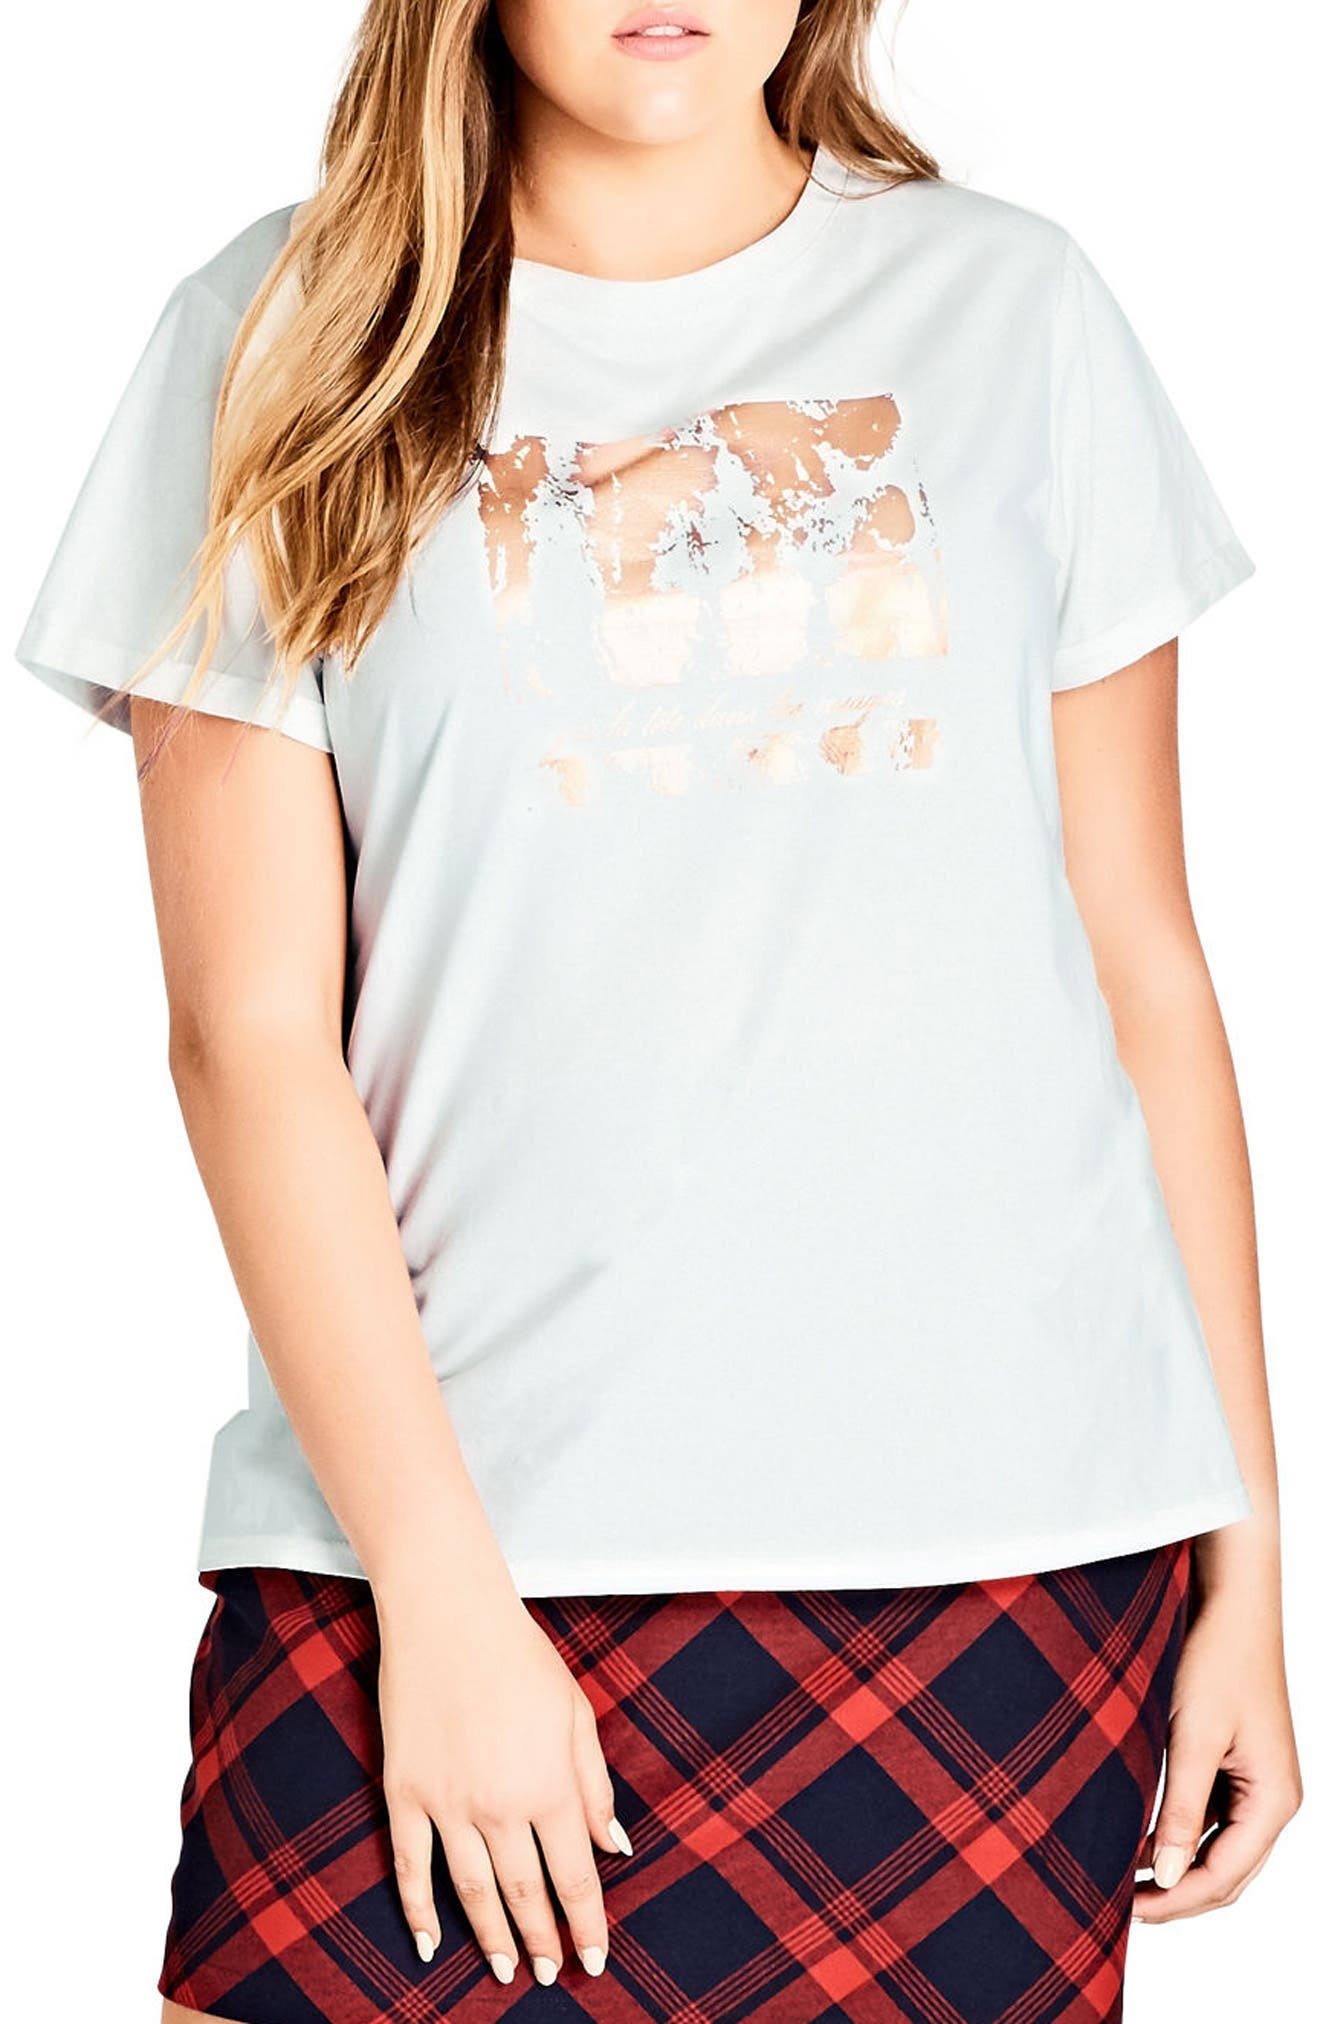 CITY CHIC Clouds Tee